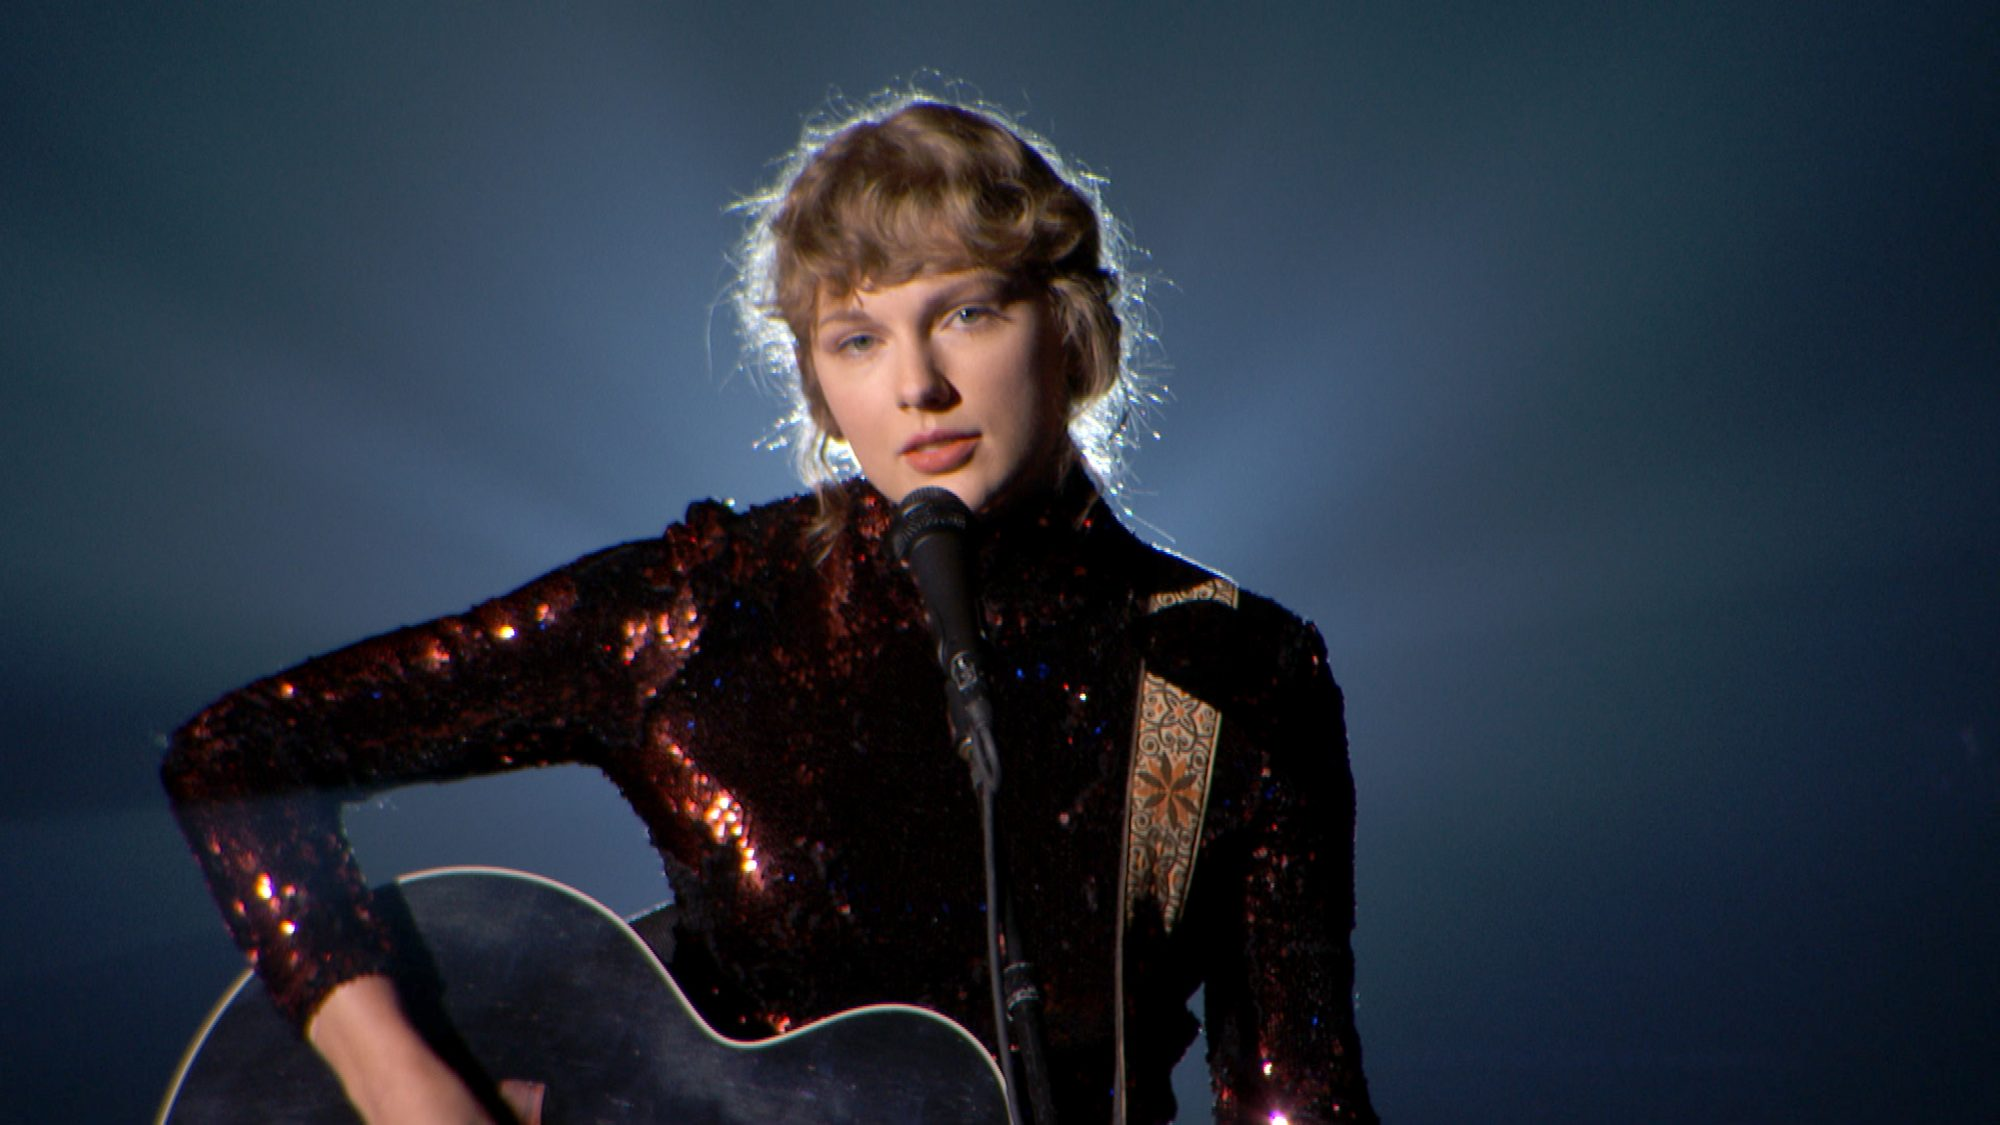 Taylor Swift ACM Awards performance betty